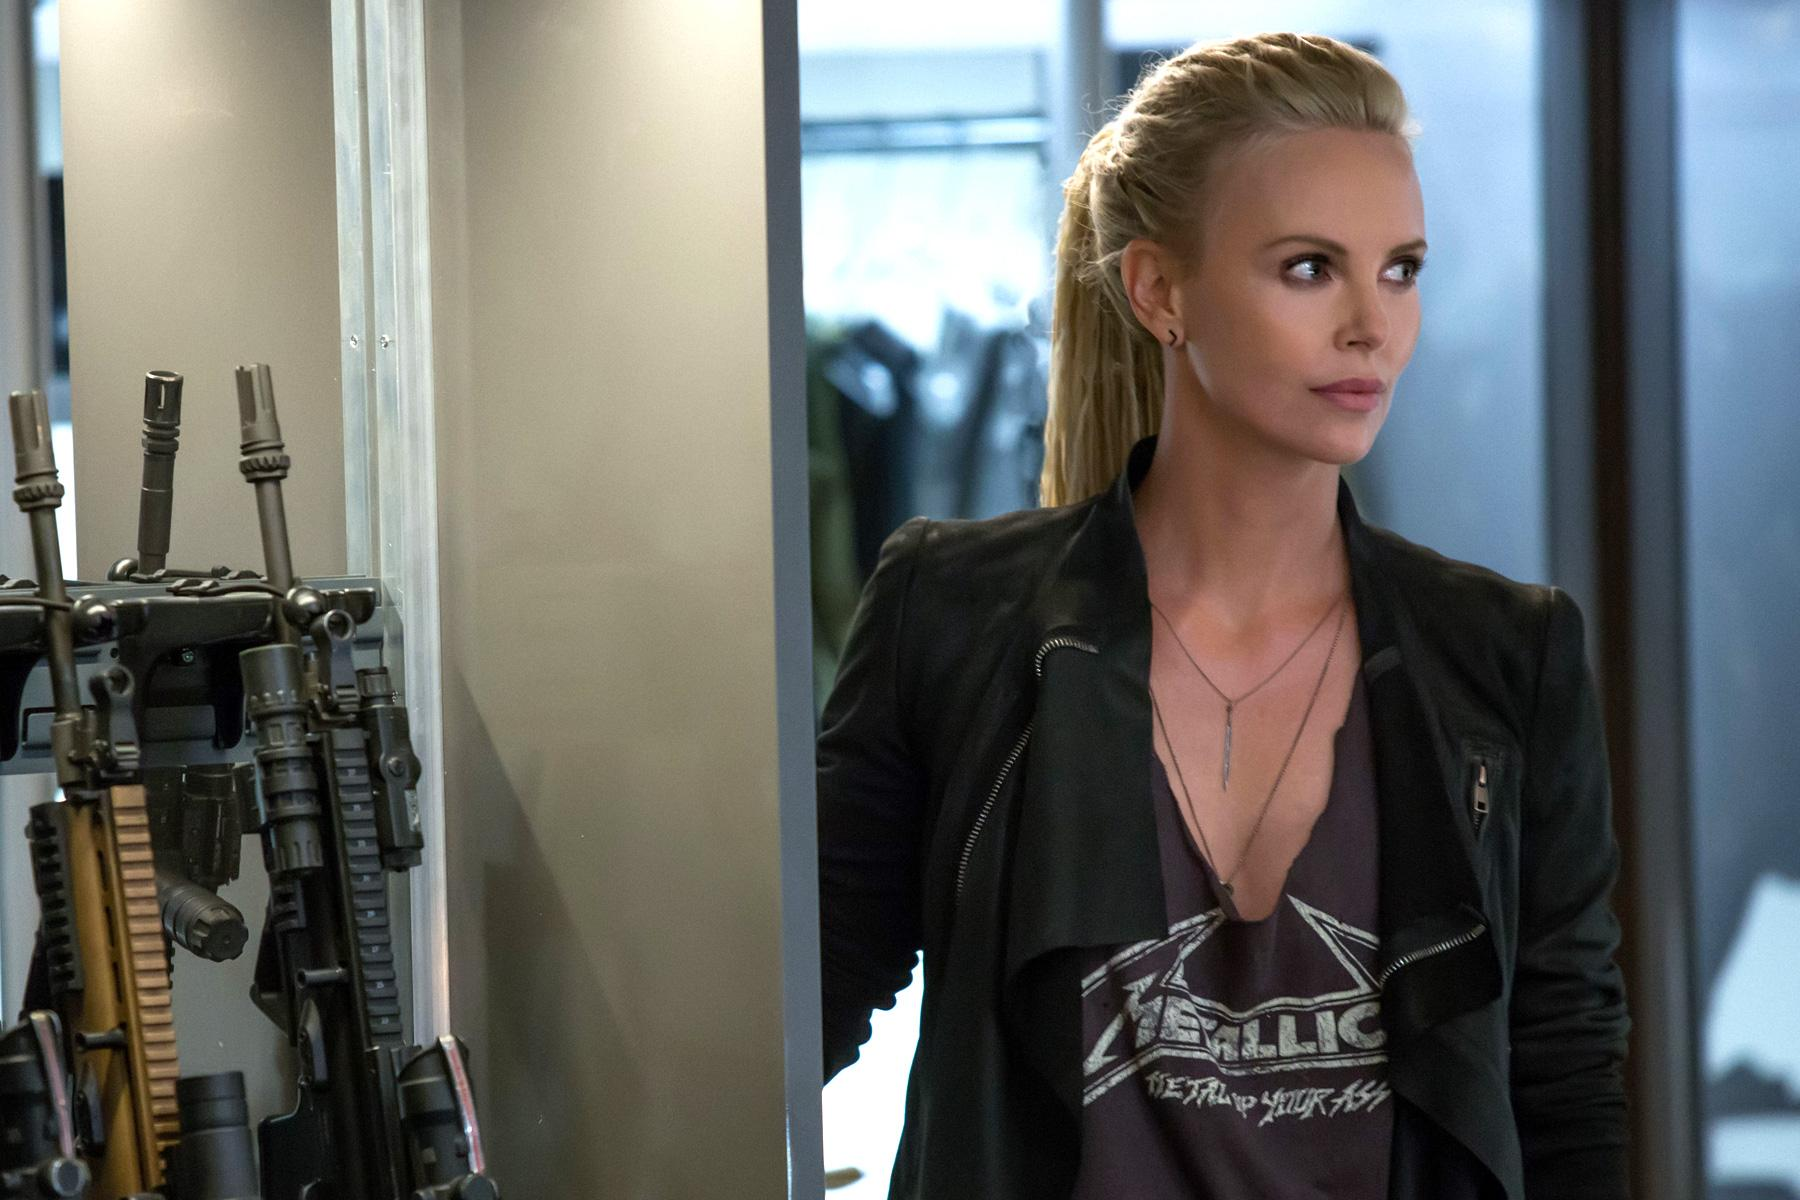 _Charlize-Theron-The-Fate-of-the-Furious